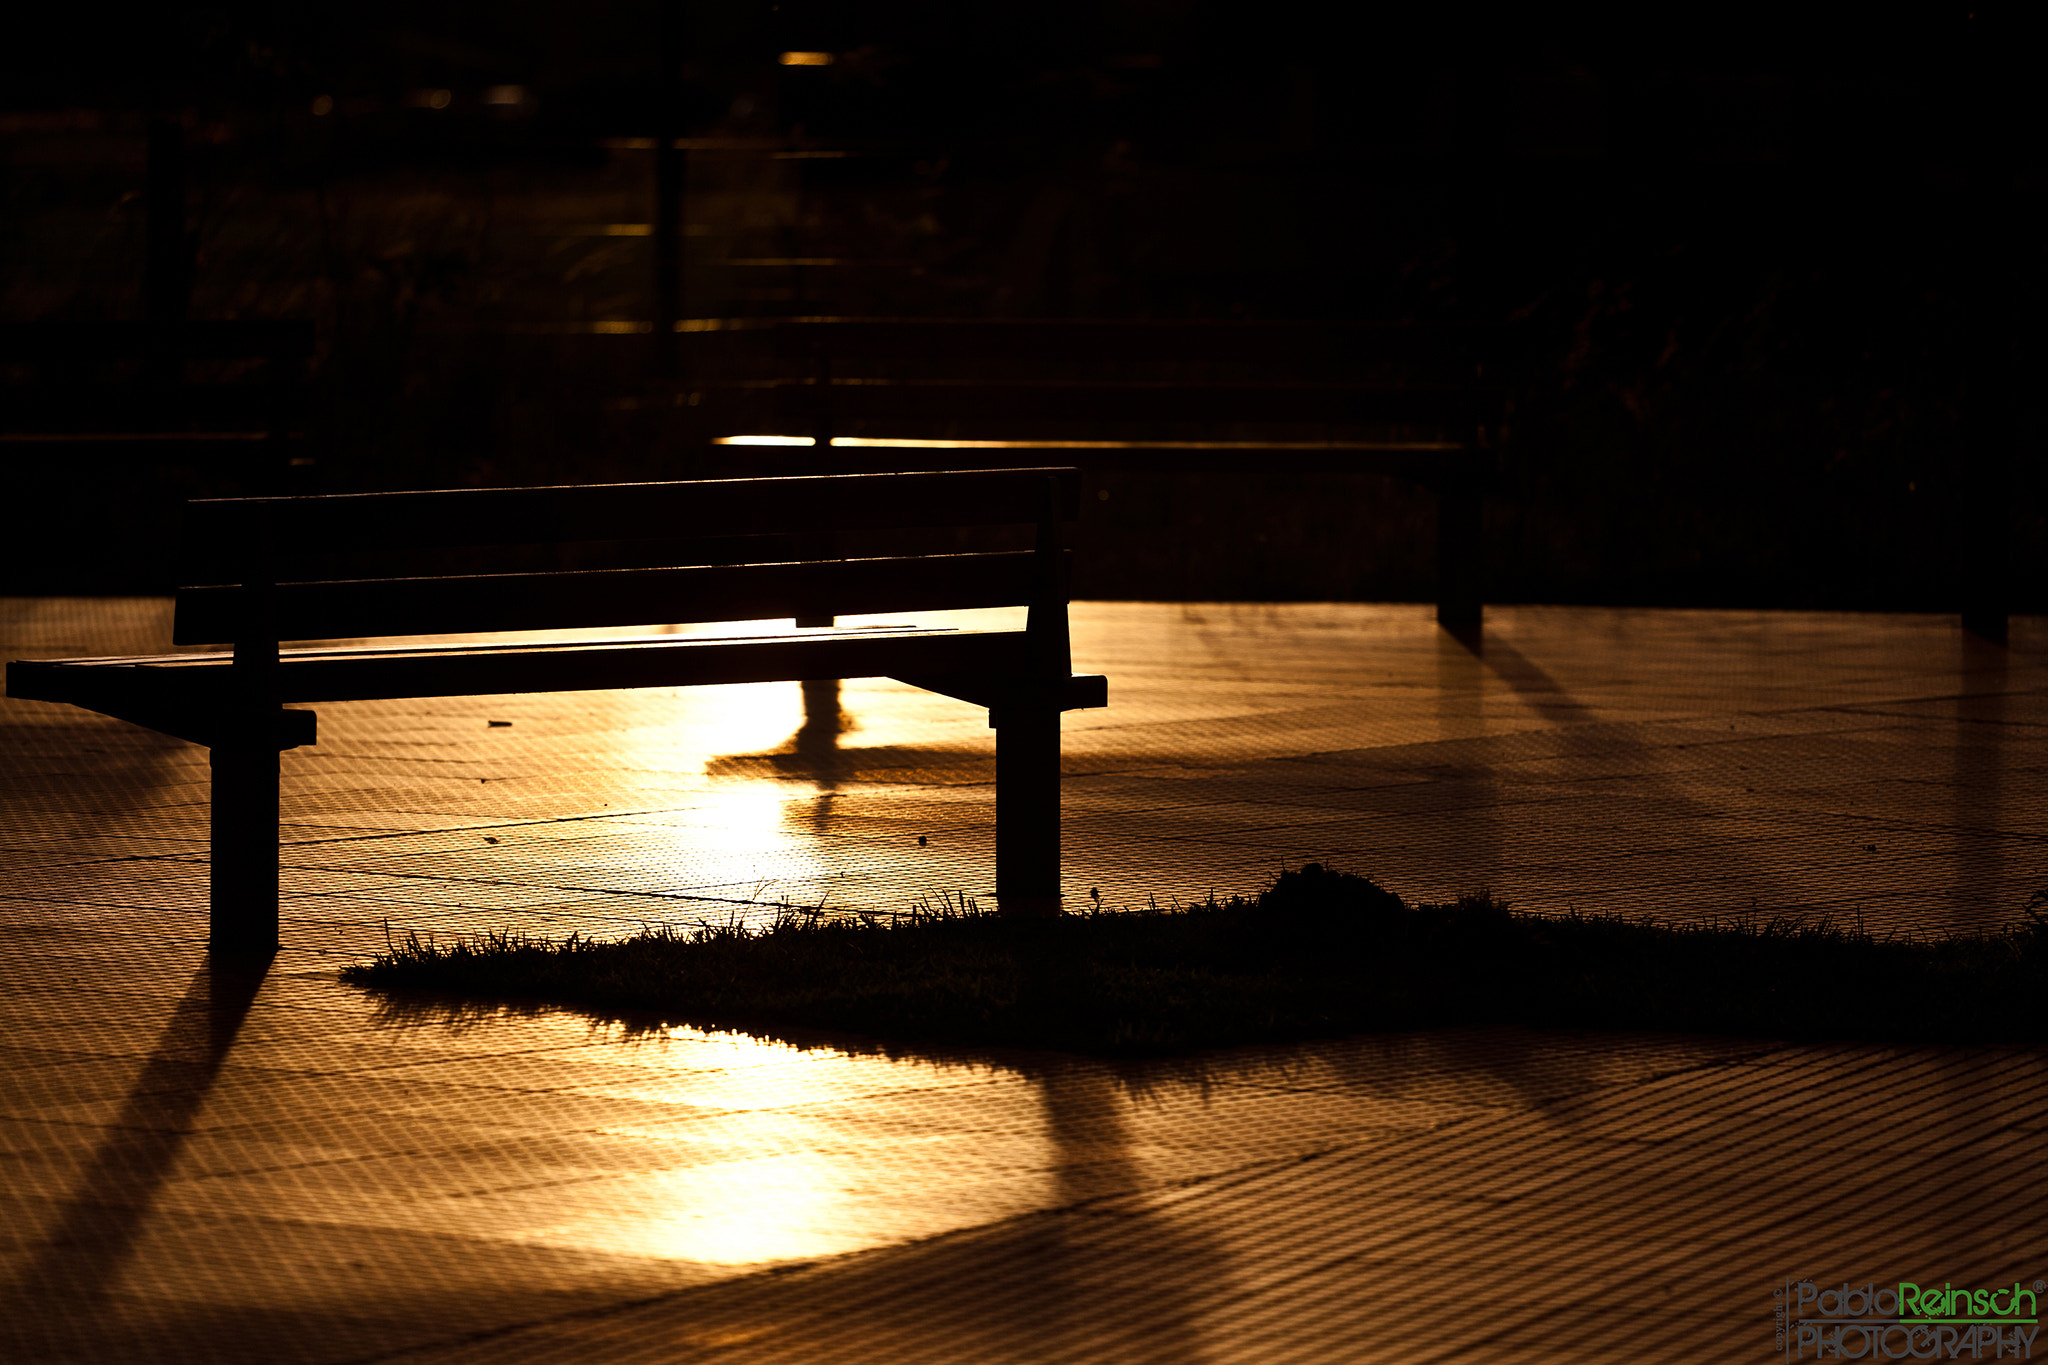 Photograph Bench silhouettes.- by Pablo Reinsch on 500px